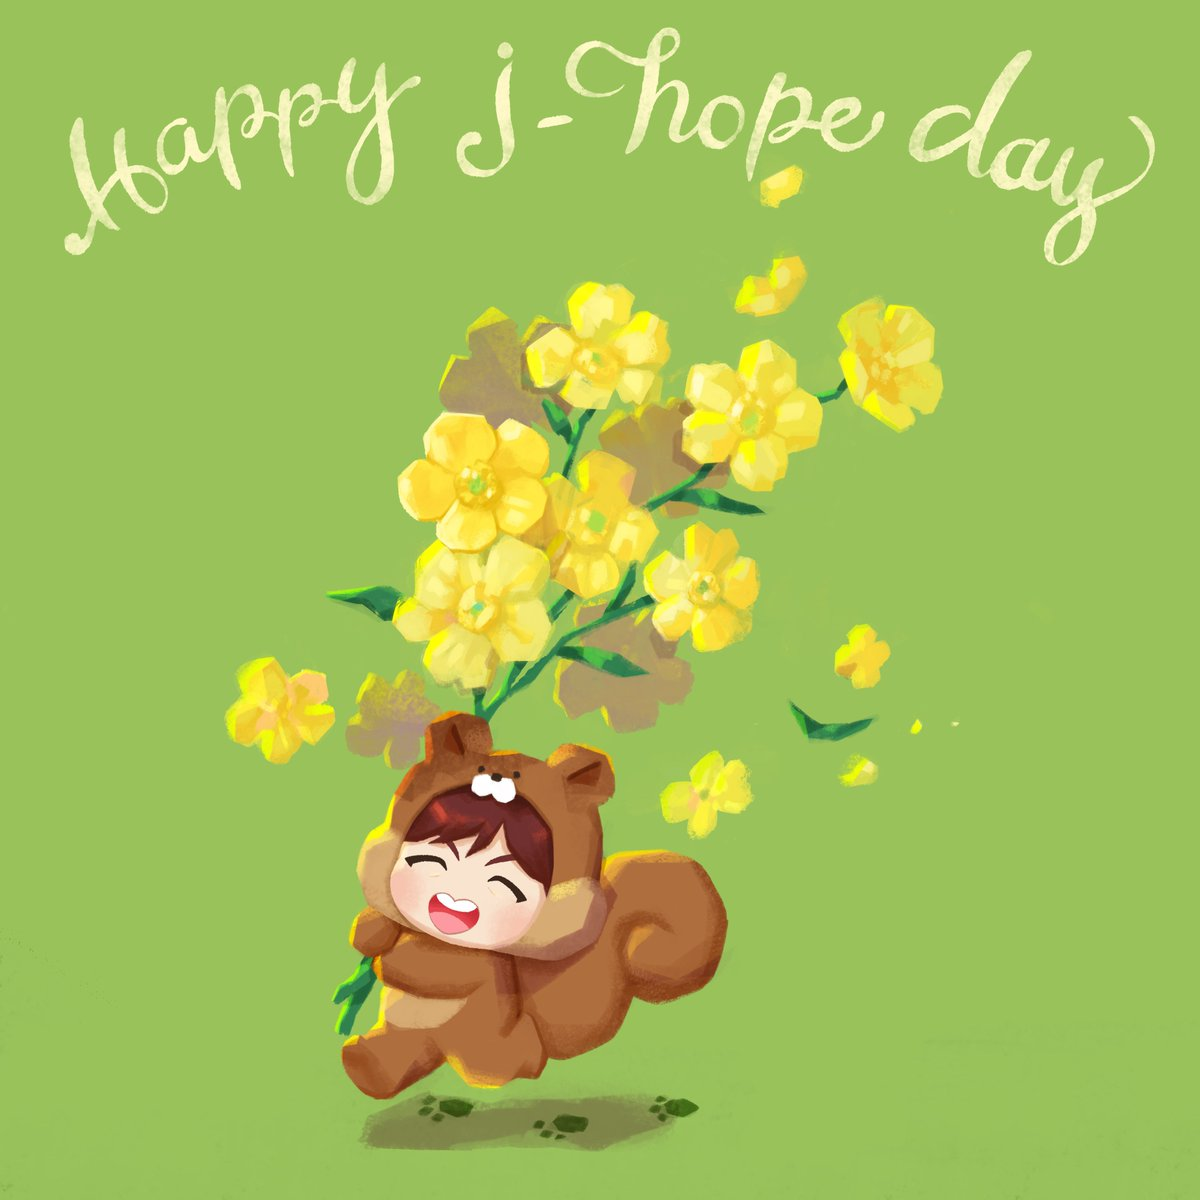 Come run with me! Today is filled with happy hope!!  #Happy_jhope_Day #TinyTAN #Birth_Flower #Buttercup